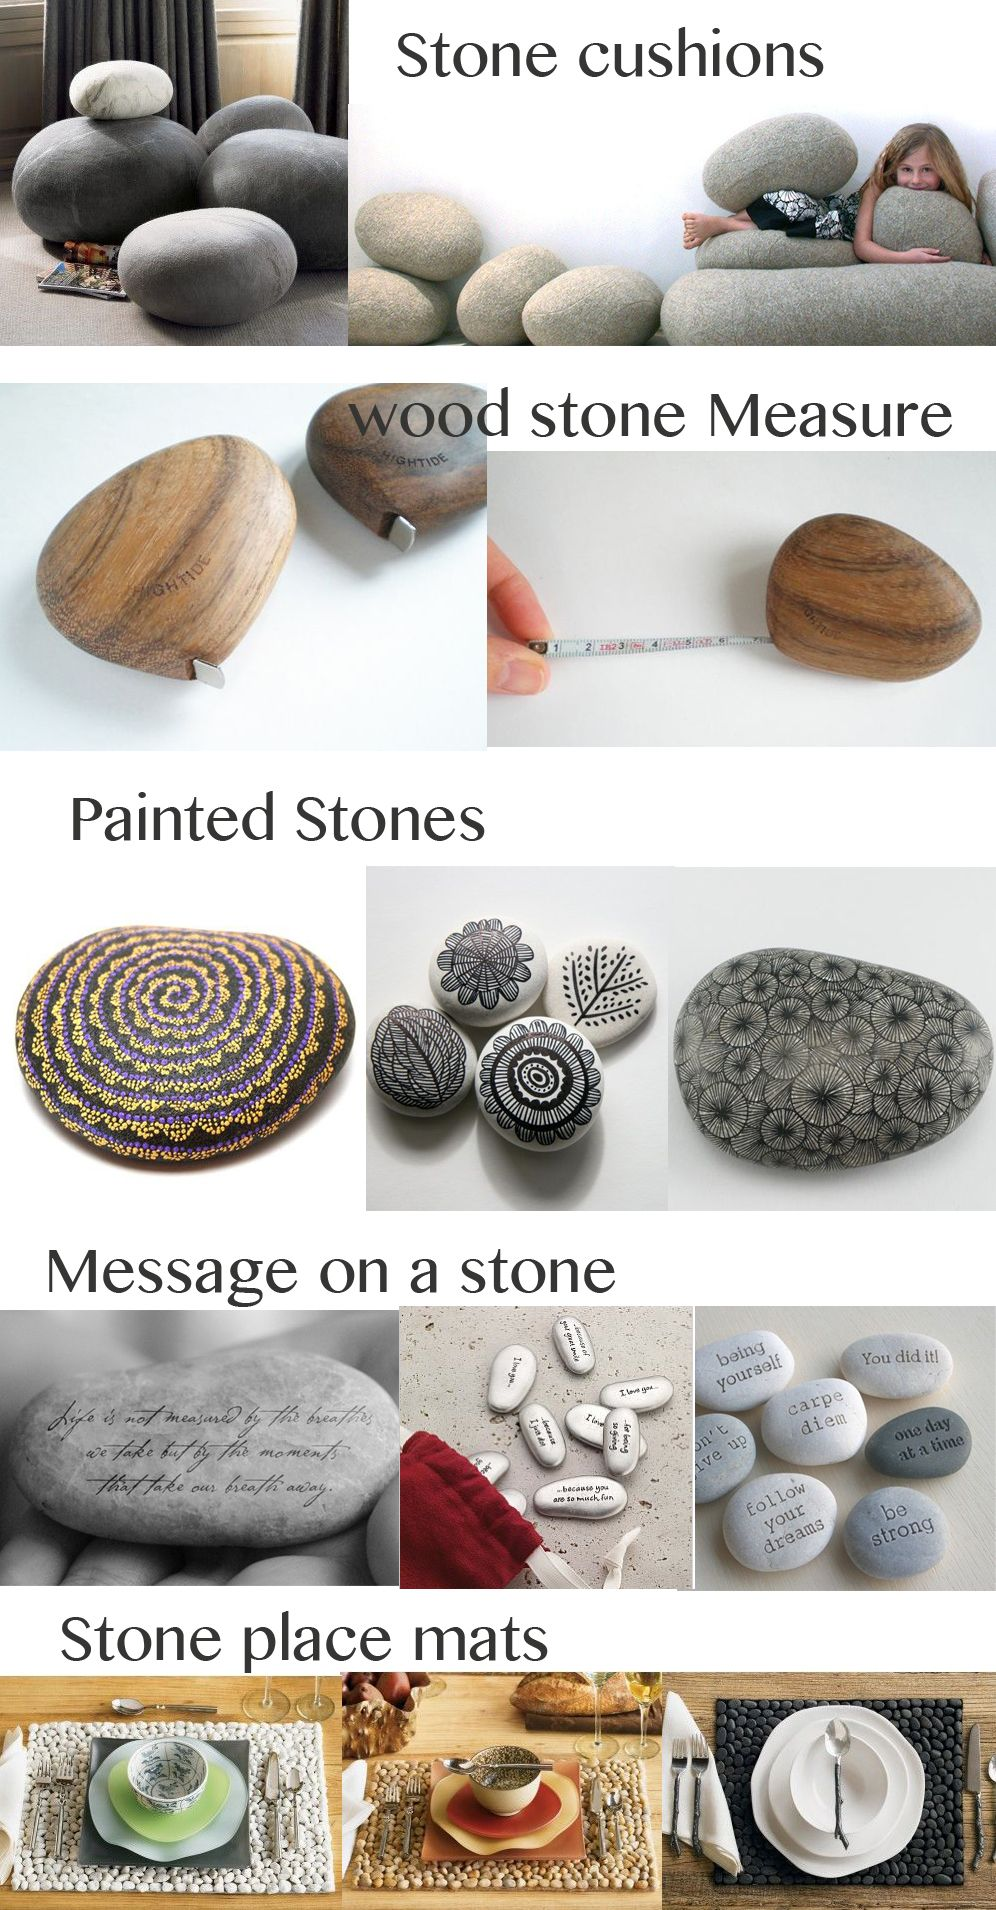 my favorite stone objects